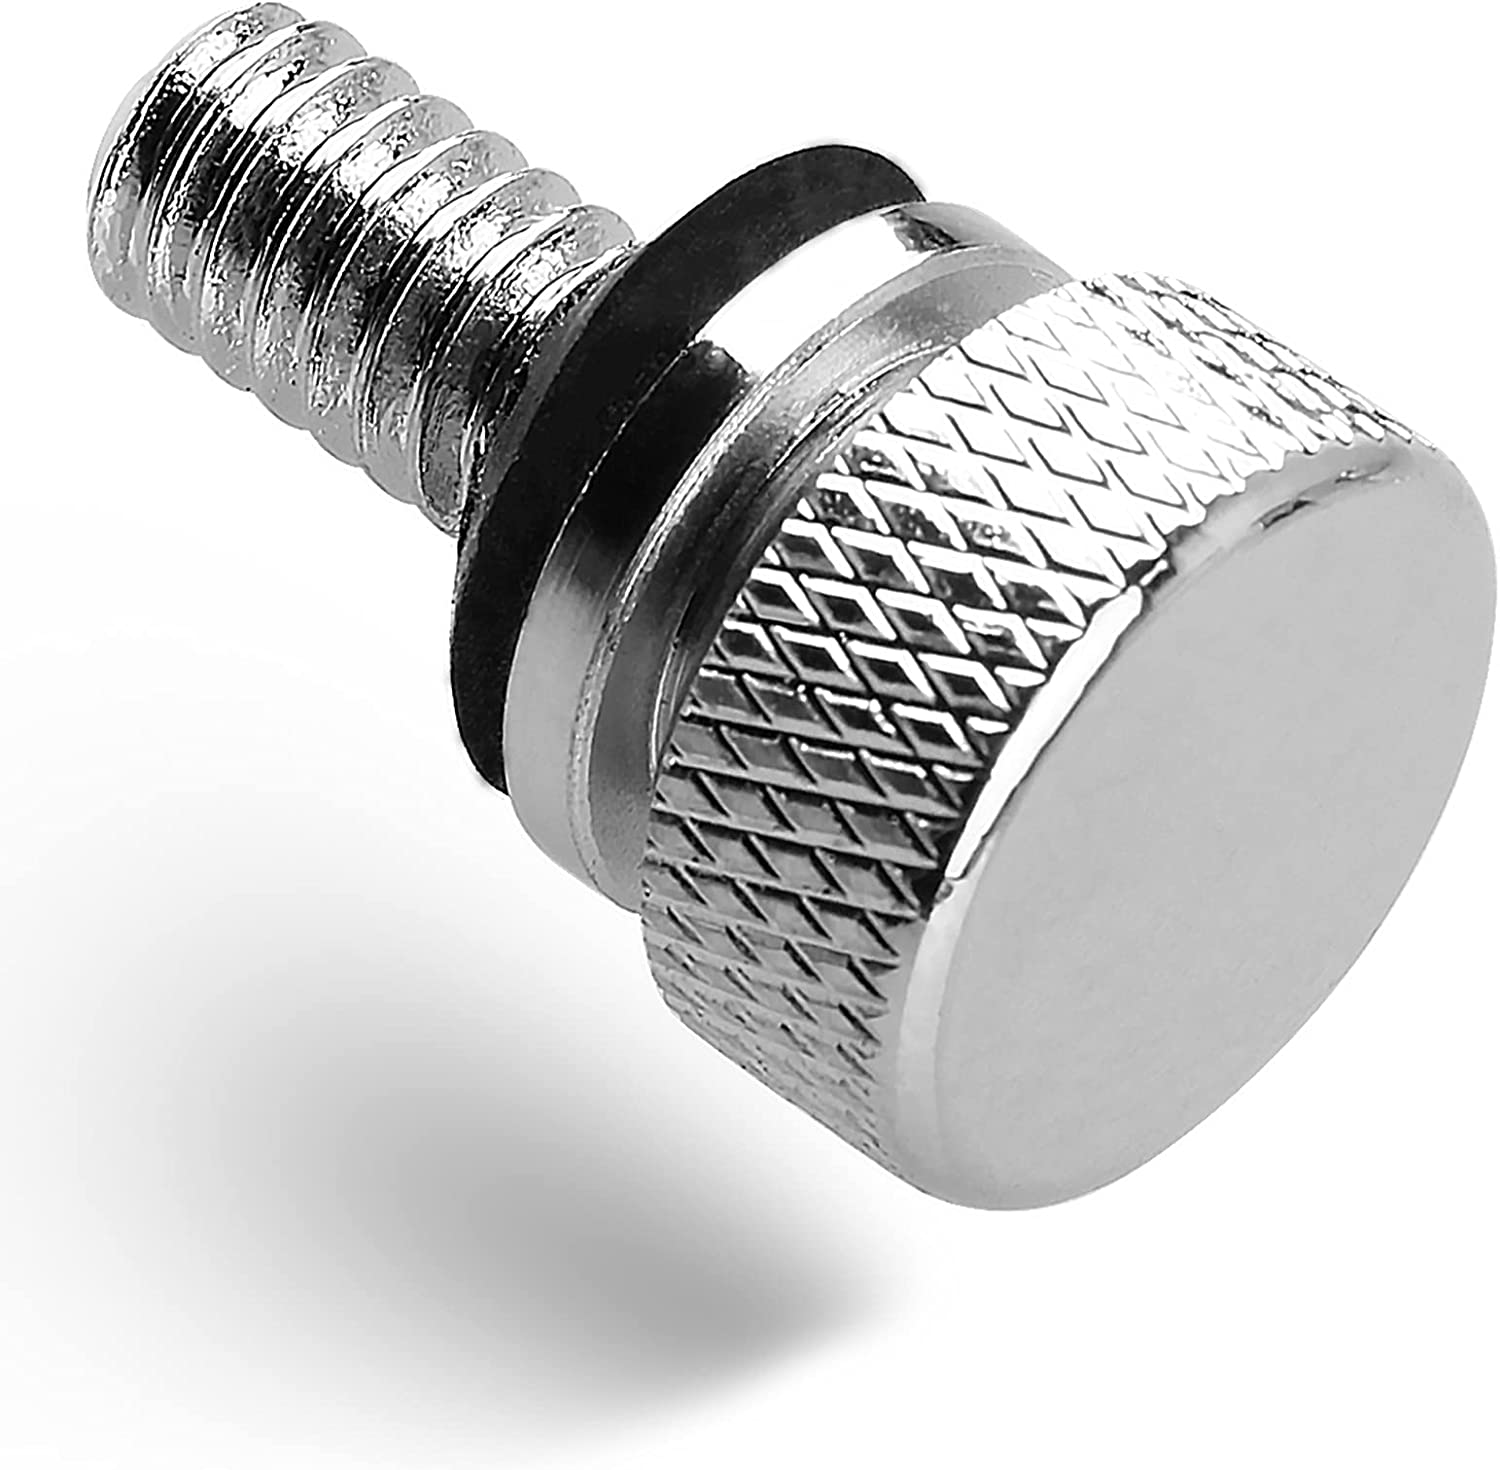 Stainless Latest item Steel Seat Bolt Rear All stores are sold Screw Mount Compatible Chrome wit